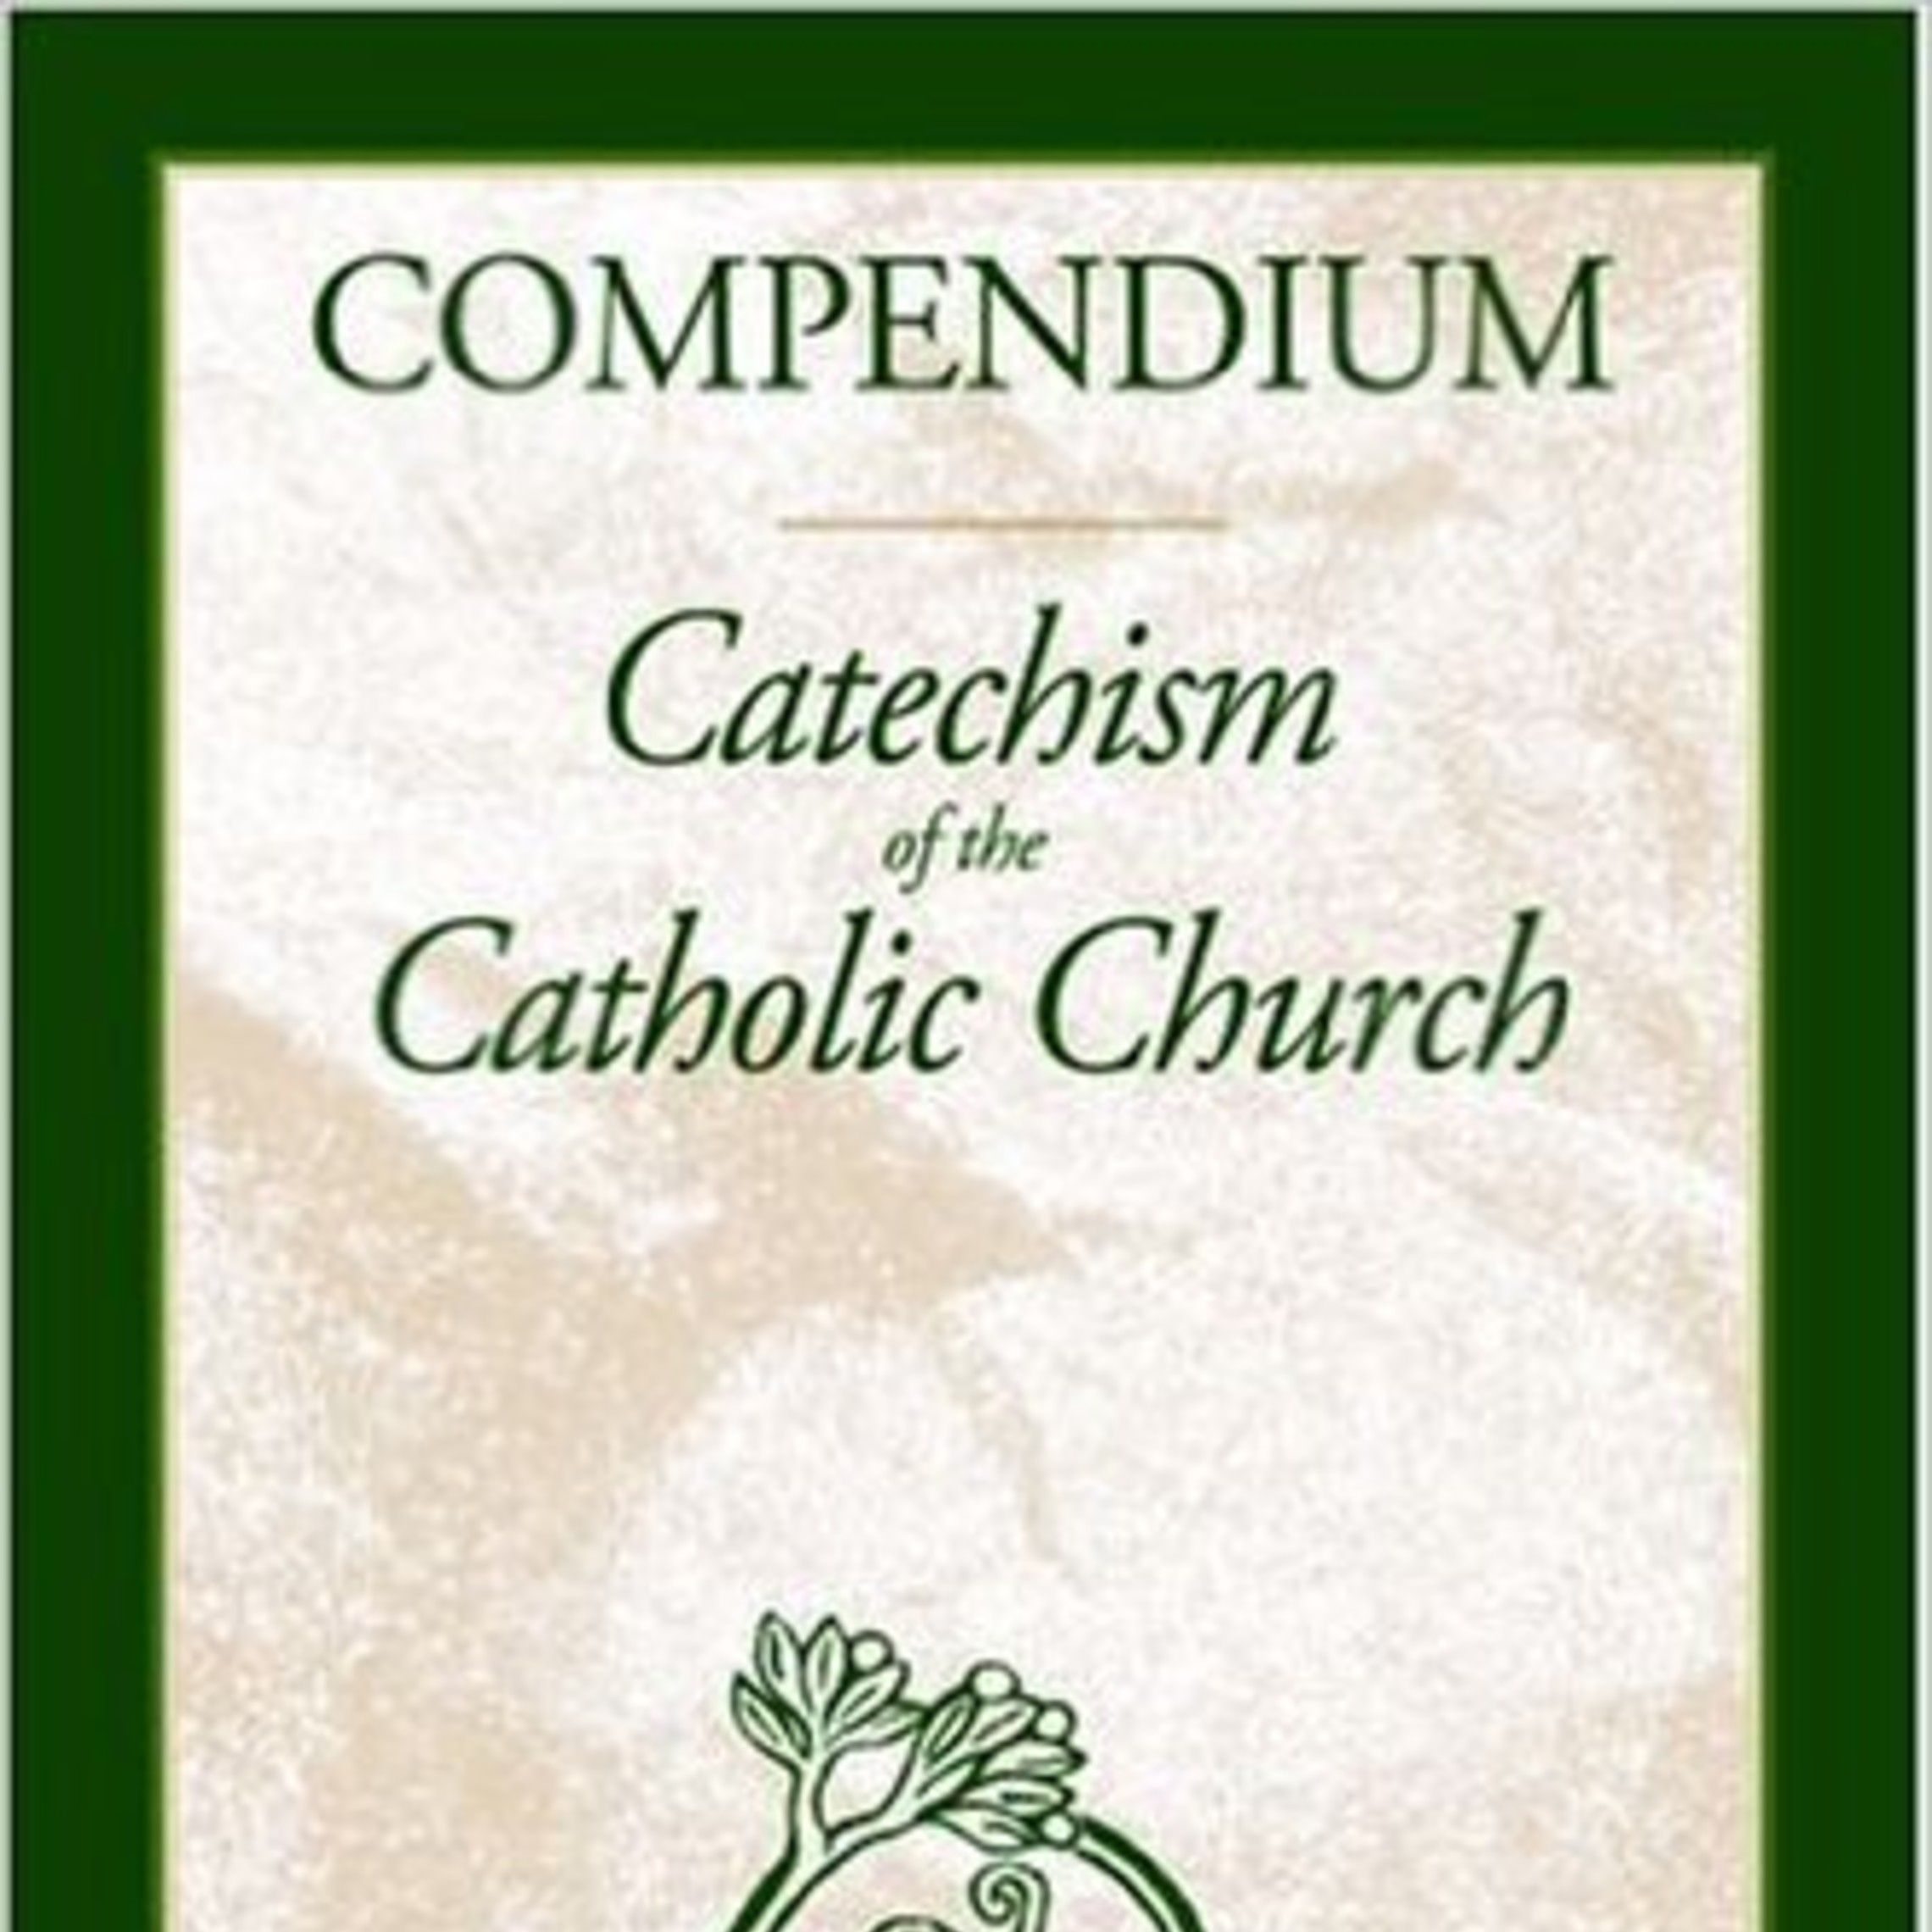 Compendium of the Catechism of the Catholic Church